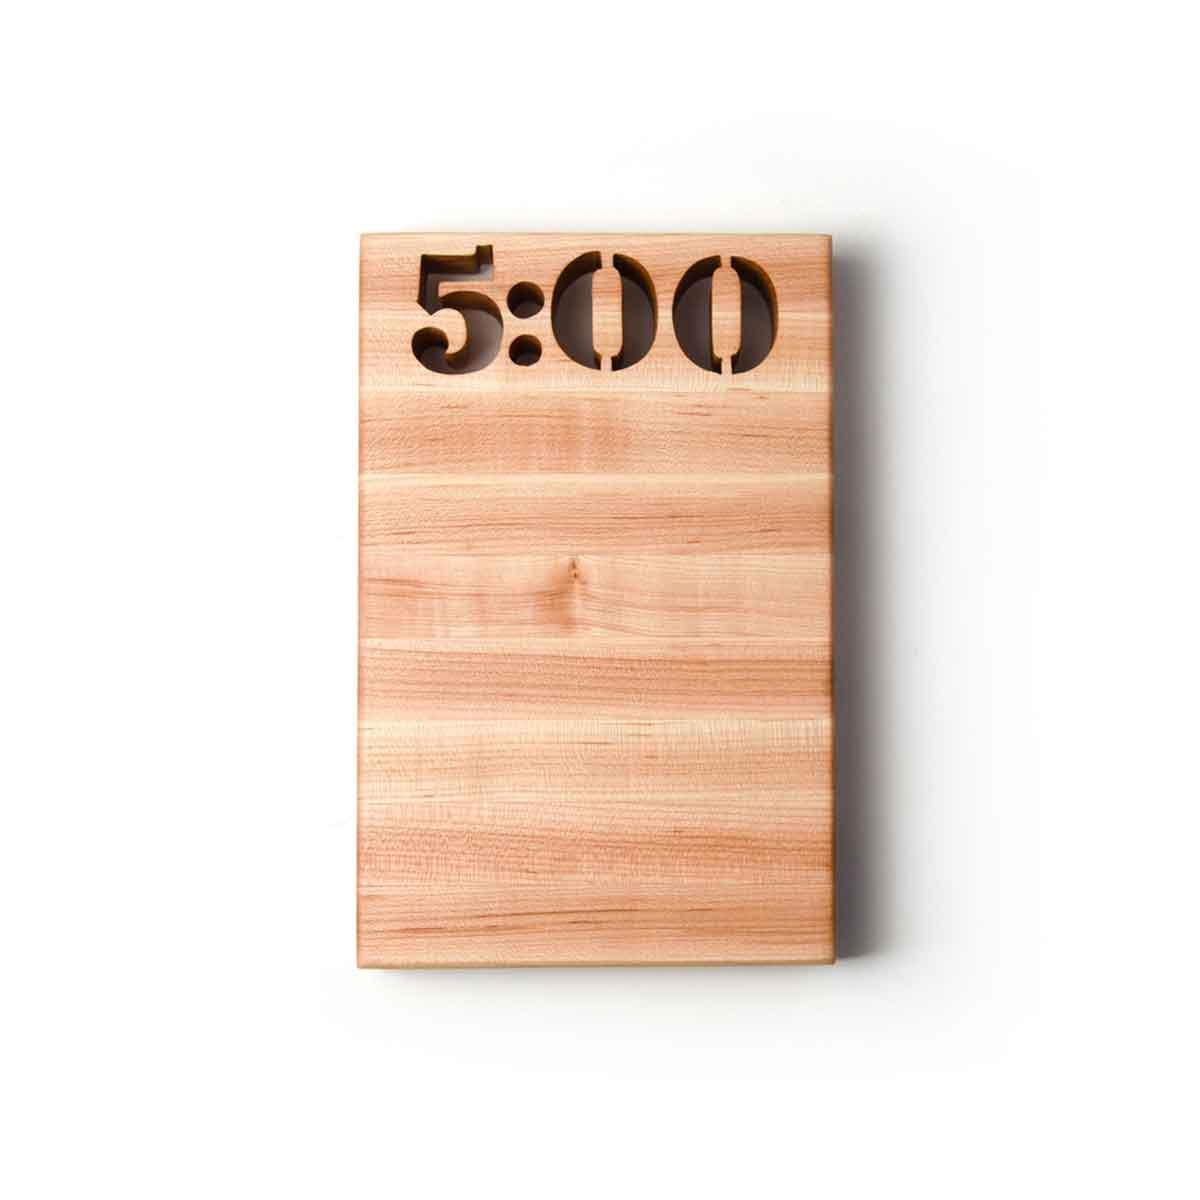 cutting board that says 5oclock - 5 0 0 cut out of the wood